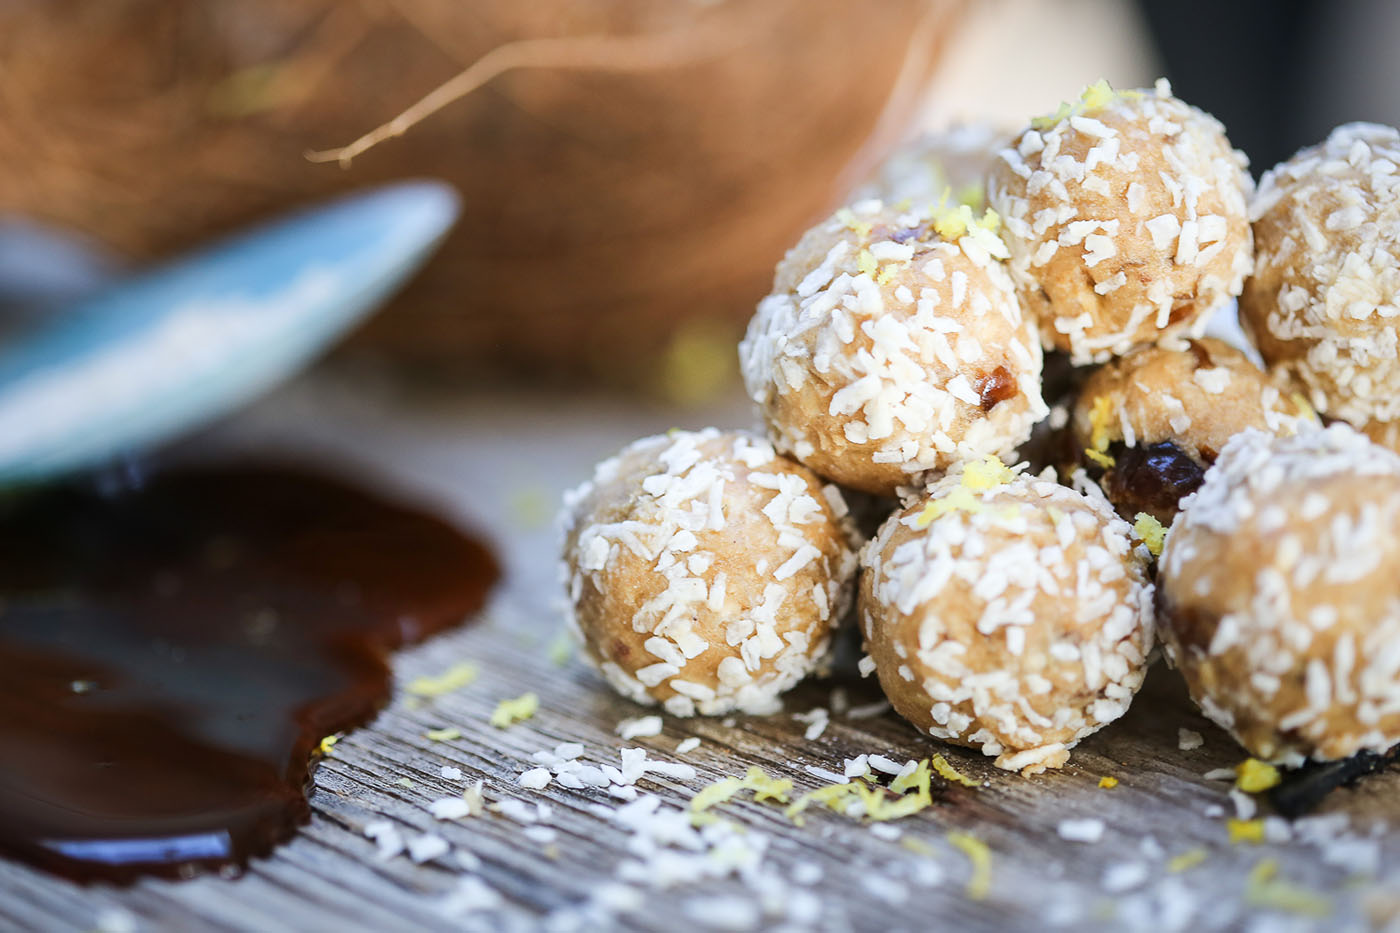 Delicious Tropical Protein Balls piled high